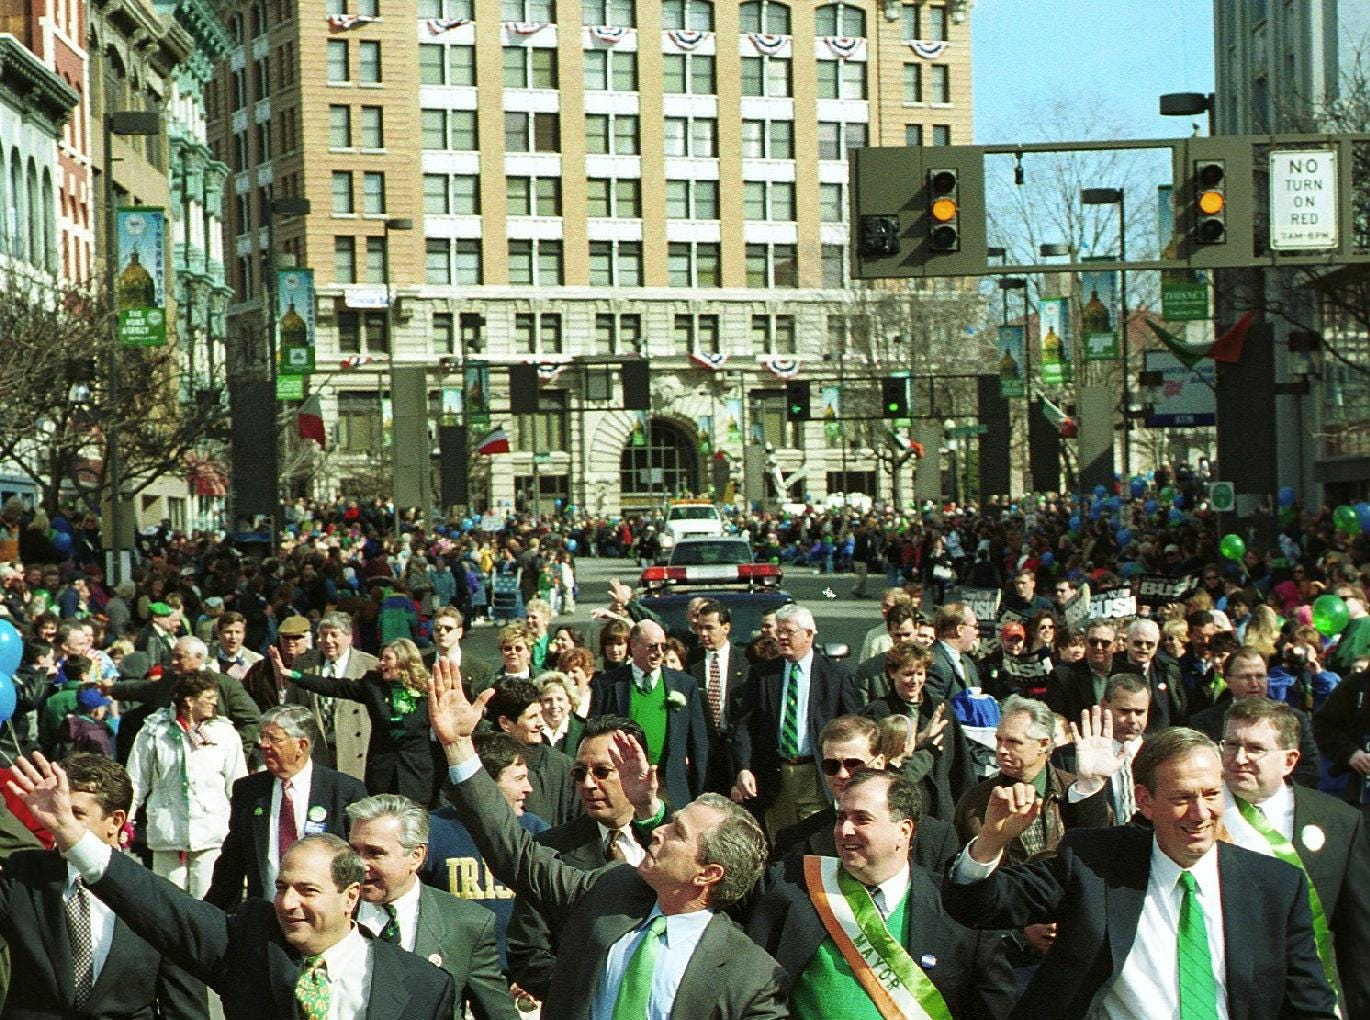 2000: The annual St.Patrick's Day parade in Binghamton had a few more people than usual including from left, State Senator Thomas Libous, Presidential Candidate George W. Bush, Binghamton Mayor Richard Bucci, and New York Governor George Pataki, March 4, 2000.